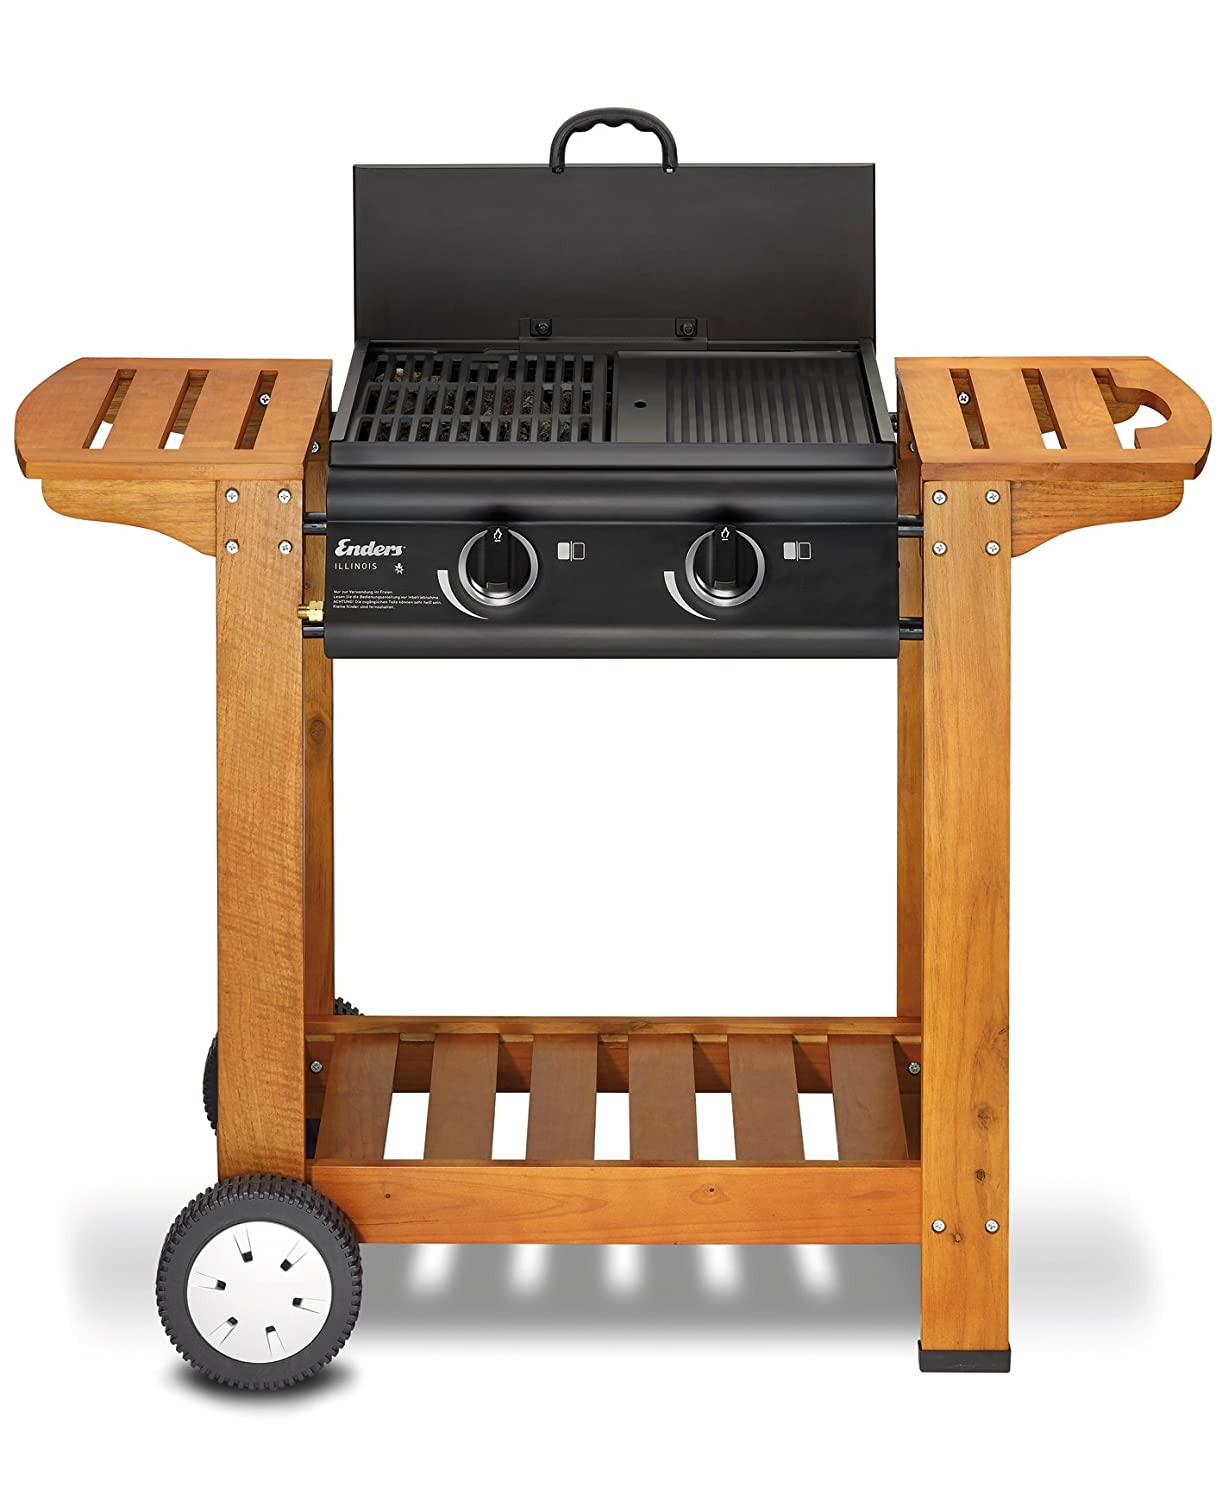 Enders 86446 Gasgrill Illinois Stone